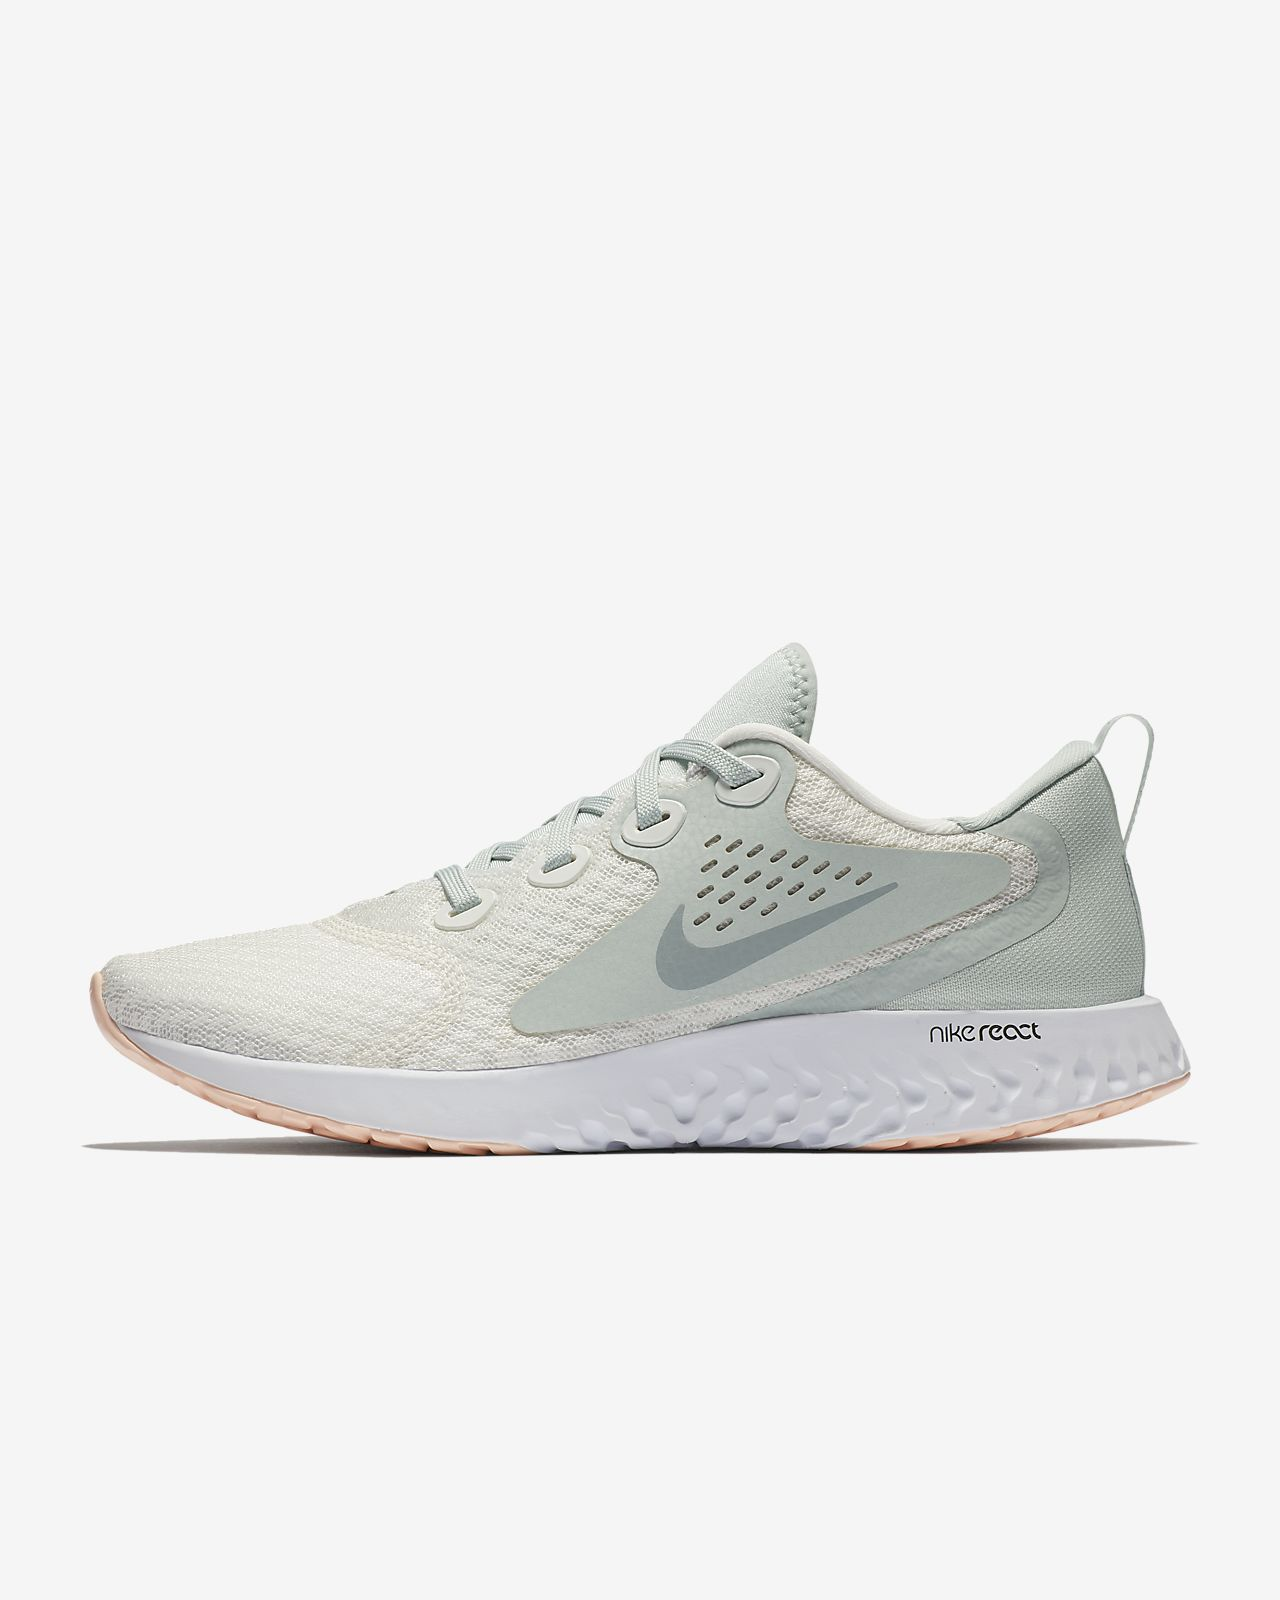 finest selection b5115 29776 Women s Running Shoe. Nike Legend React